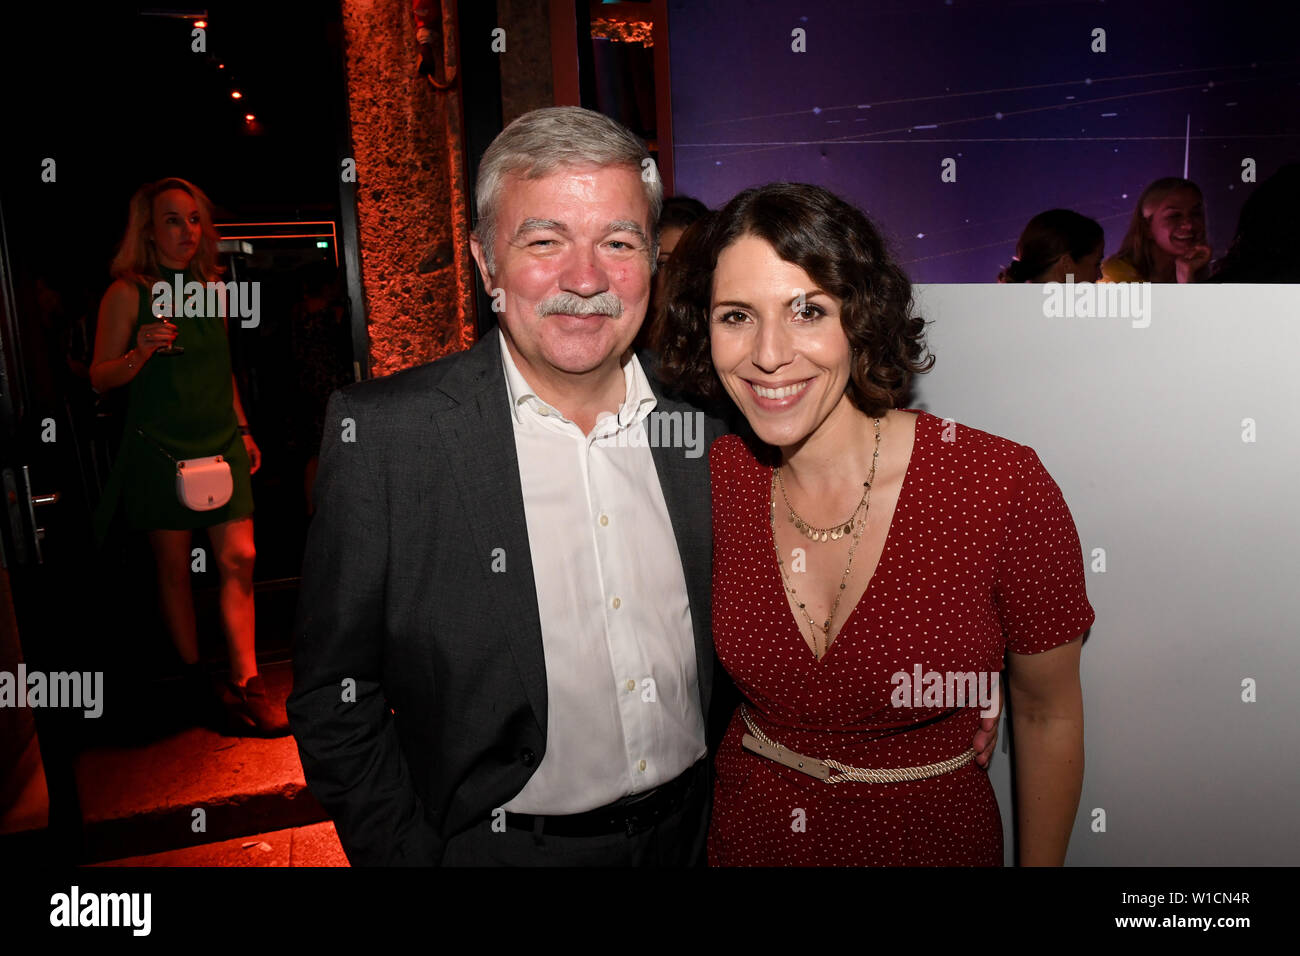 01 July 2019, Bavaria, Munich: Producer Alexander Ollig and actress Eva-Maria Reichert celebrate at the Audi Director's Cut and the Movie Meets Media industry get-together at Filmfest München, which takes place from 27.06.2019 to 06.07.2019. Photo: Felix Hörhager/dpa - Stock Image